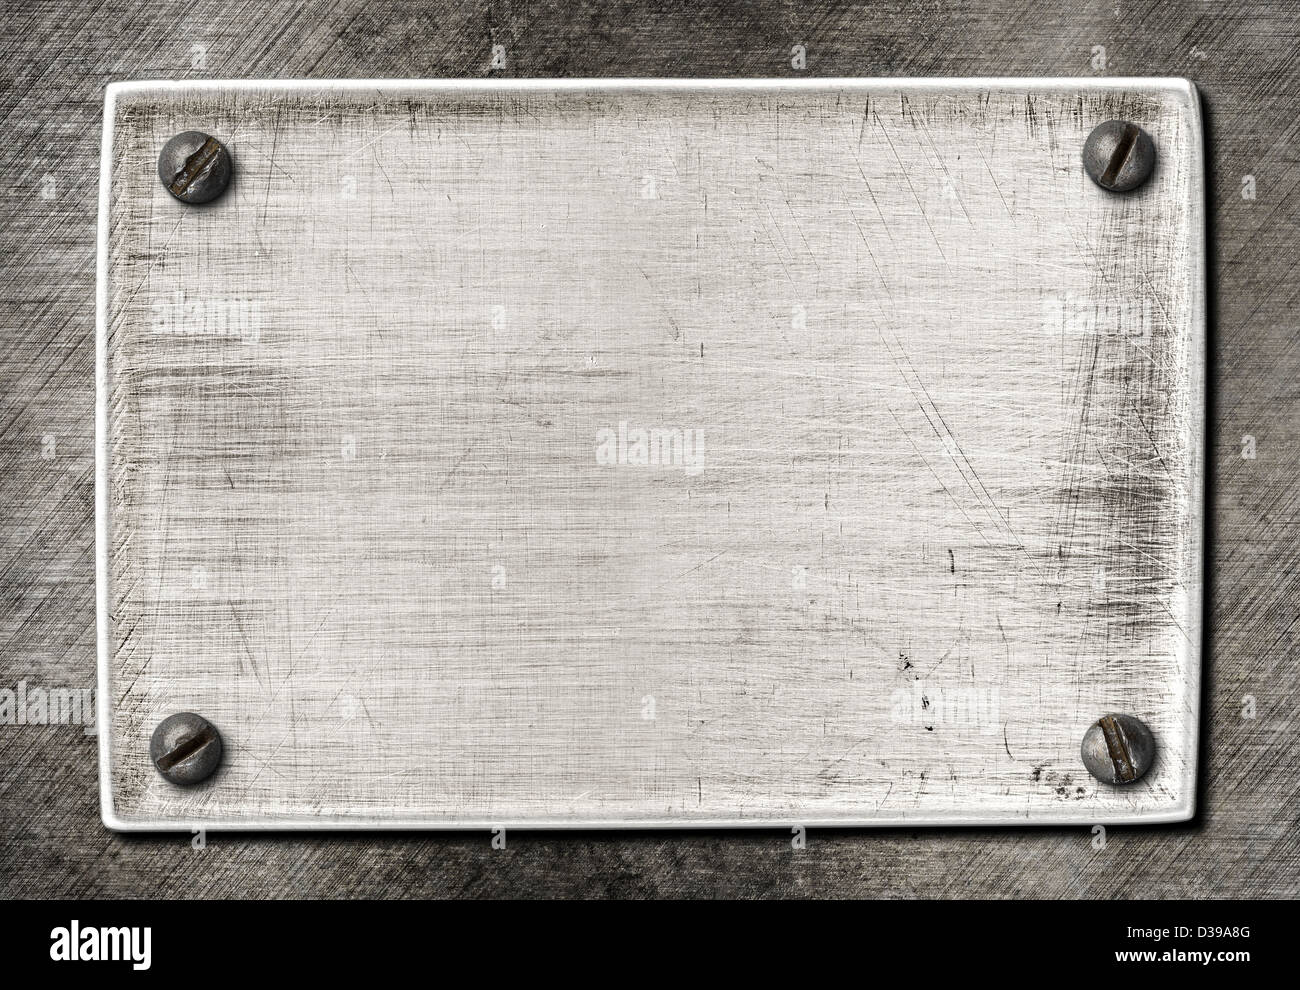 old scratched metal plate texture with screws - Stock Image